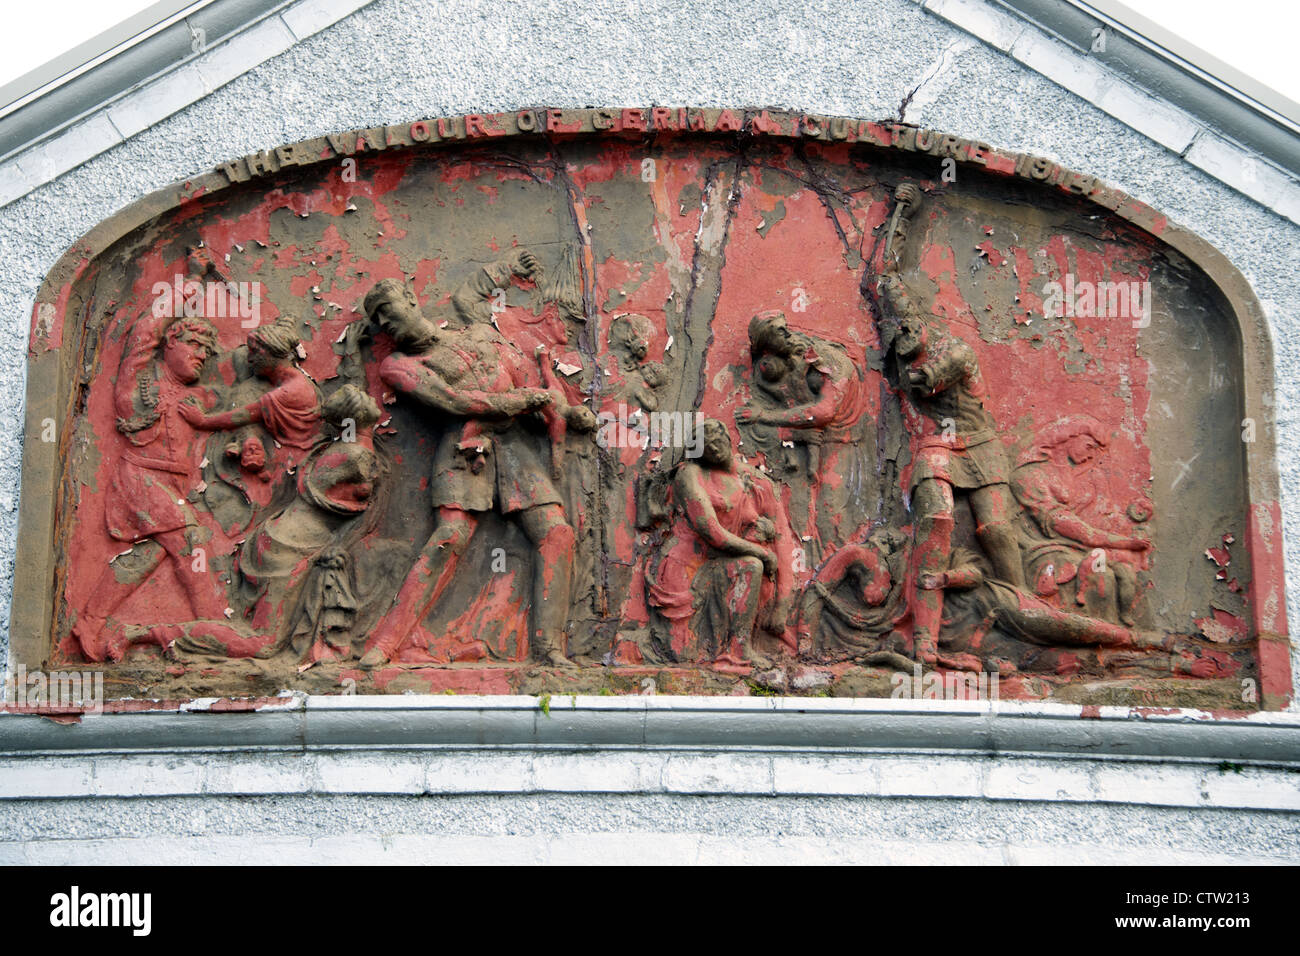 The Kultur Panel.  The Valour of German Culture 1914. - Stock Image